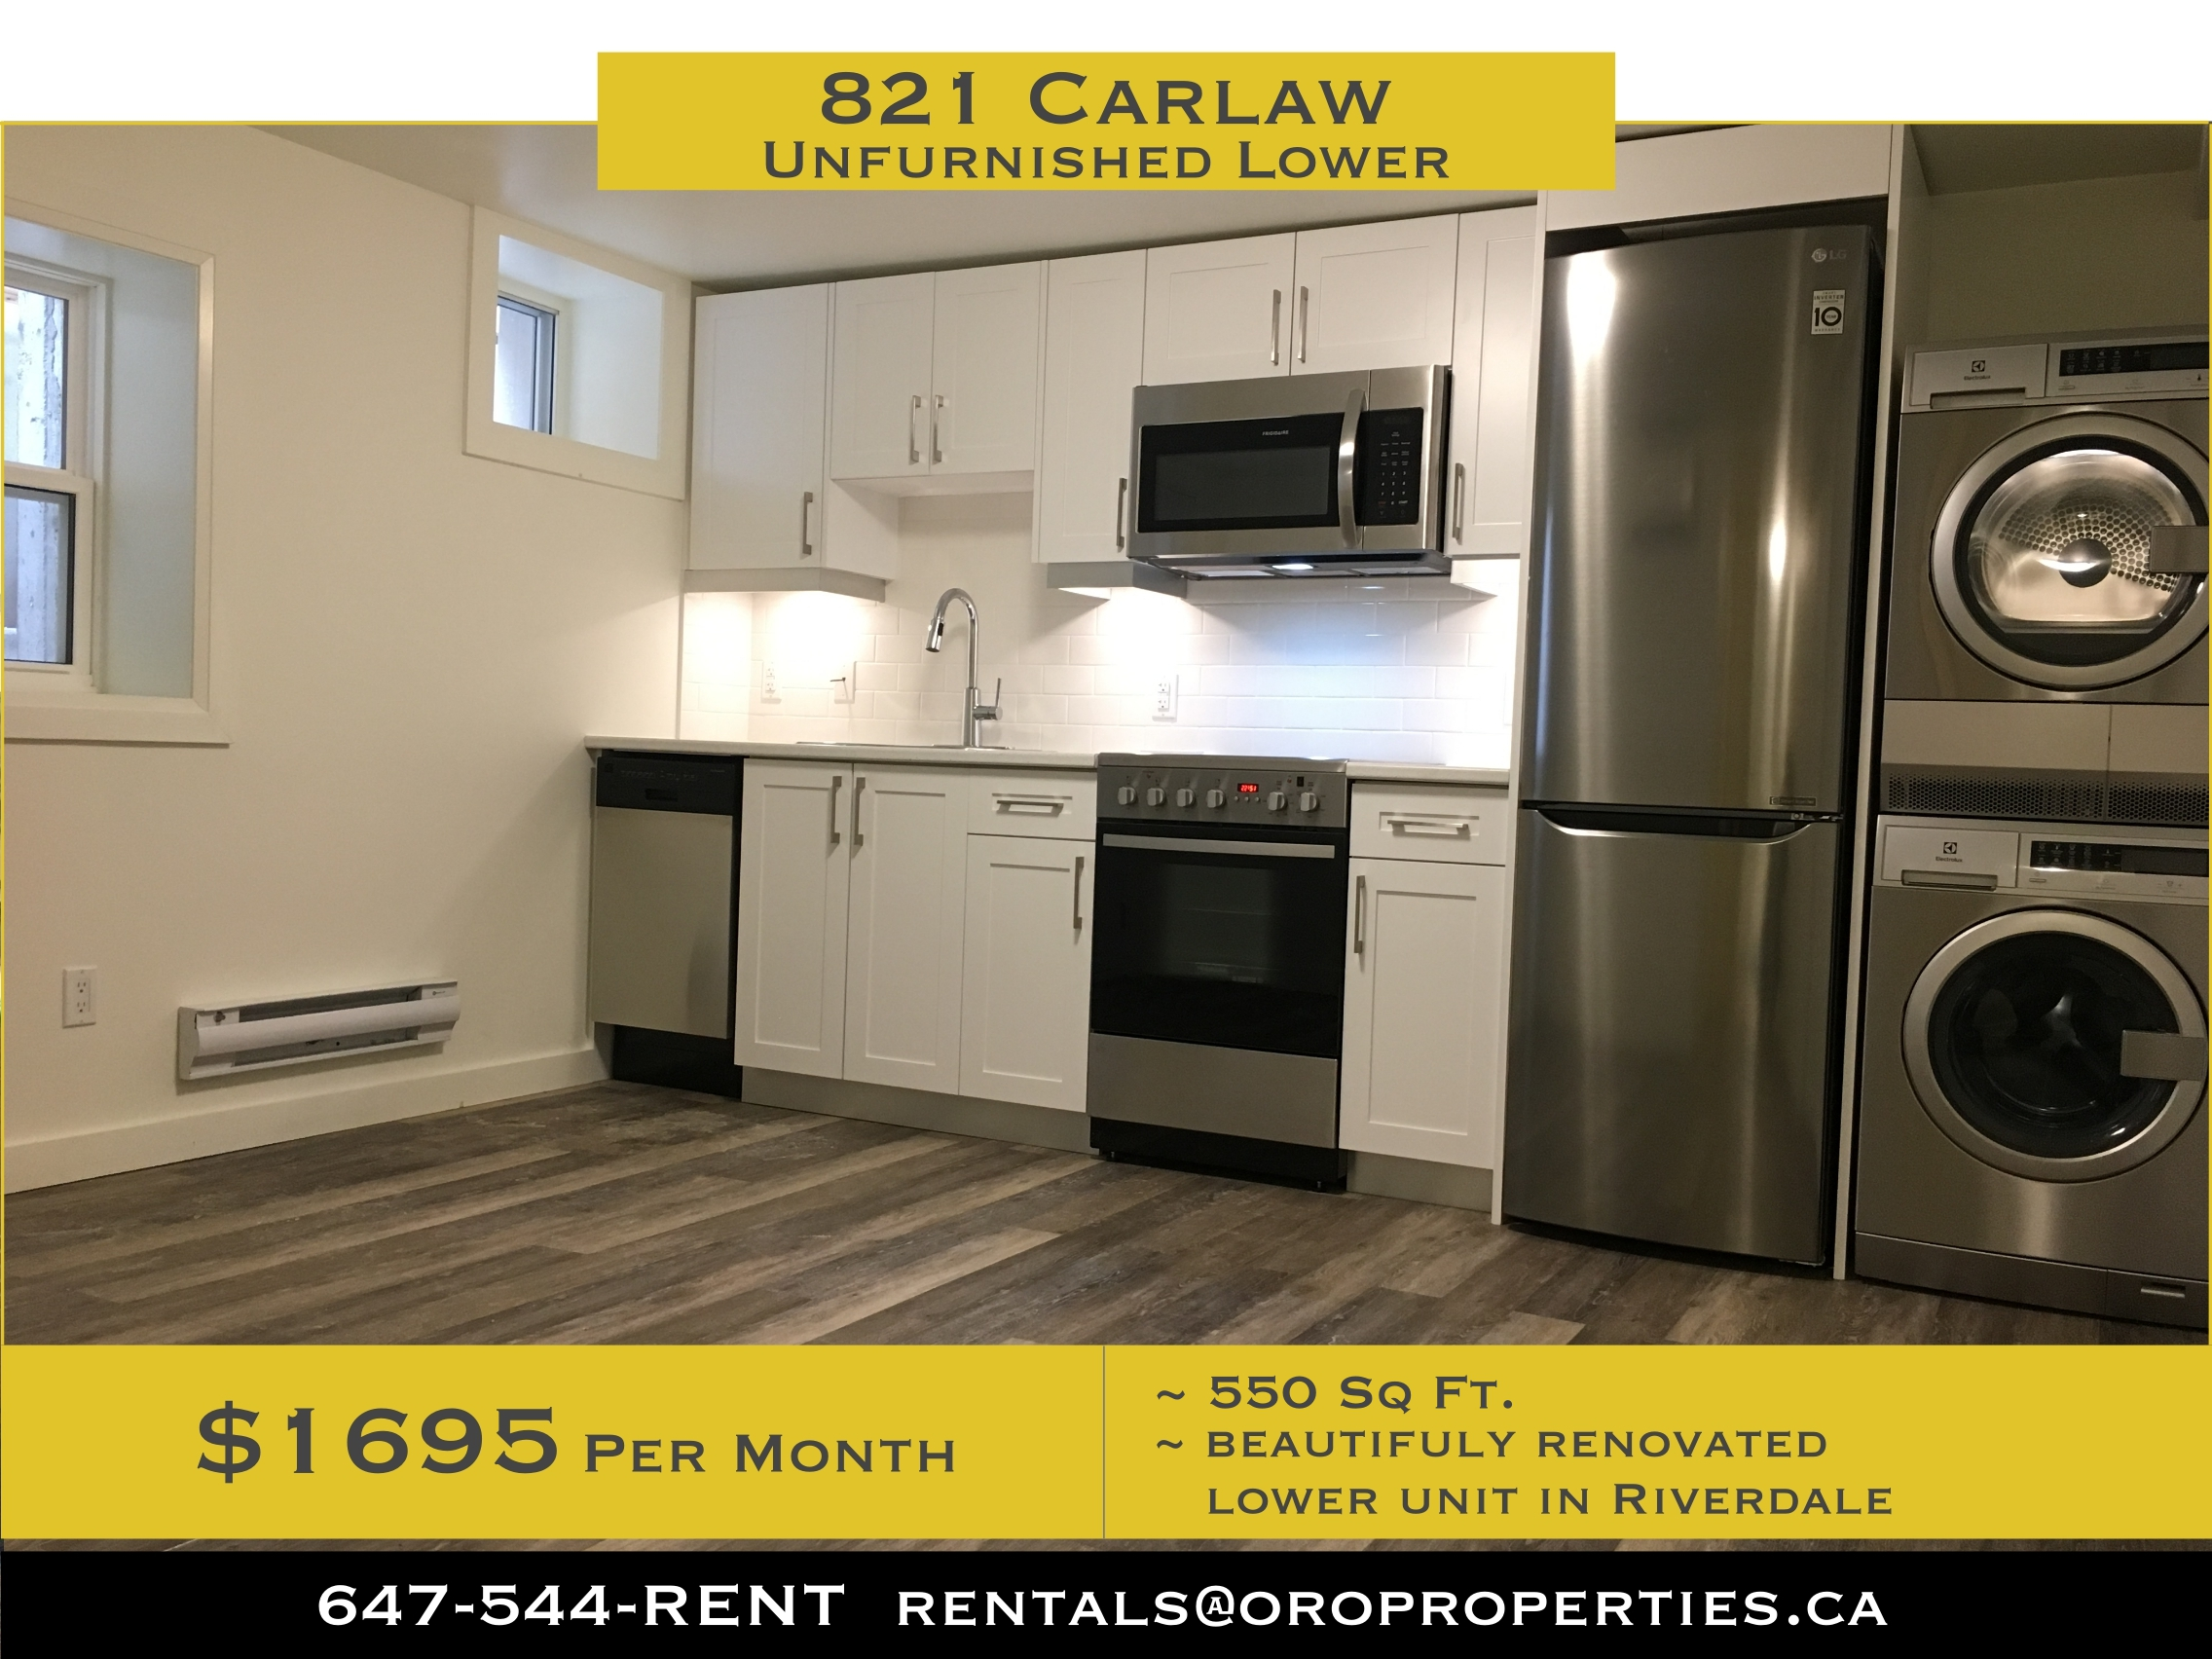 RIVERDALE / Greektown – DANFORTH Living at it's BEST!